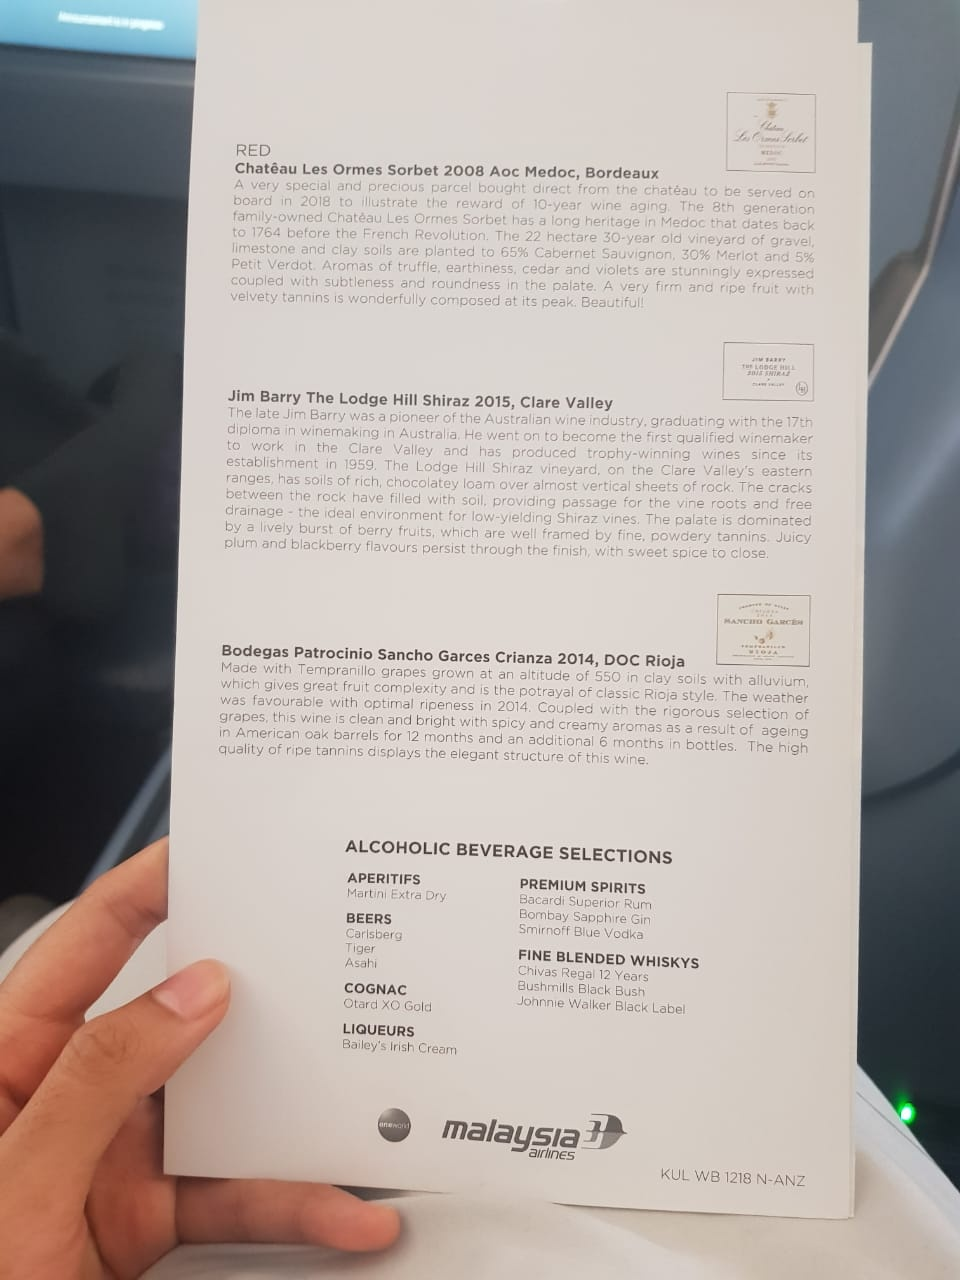 What is it like to fly with Malaysia Airlines (MAS)? - Quora